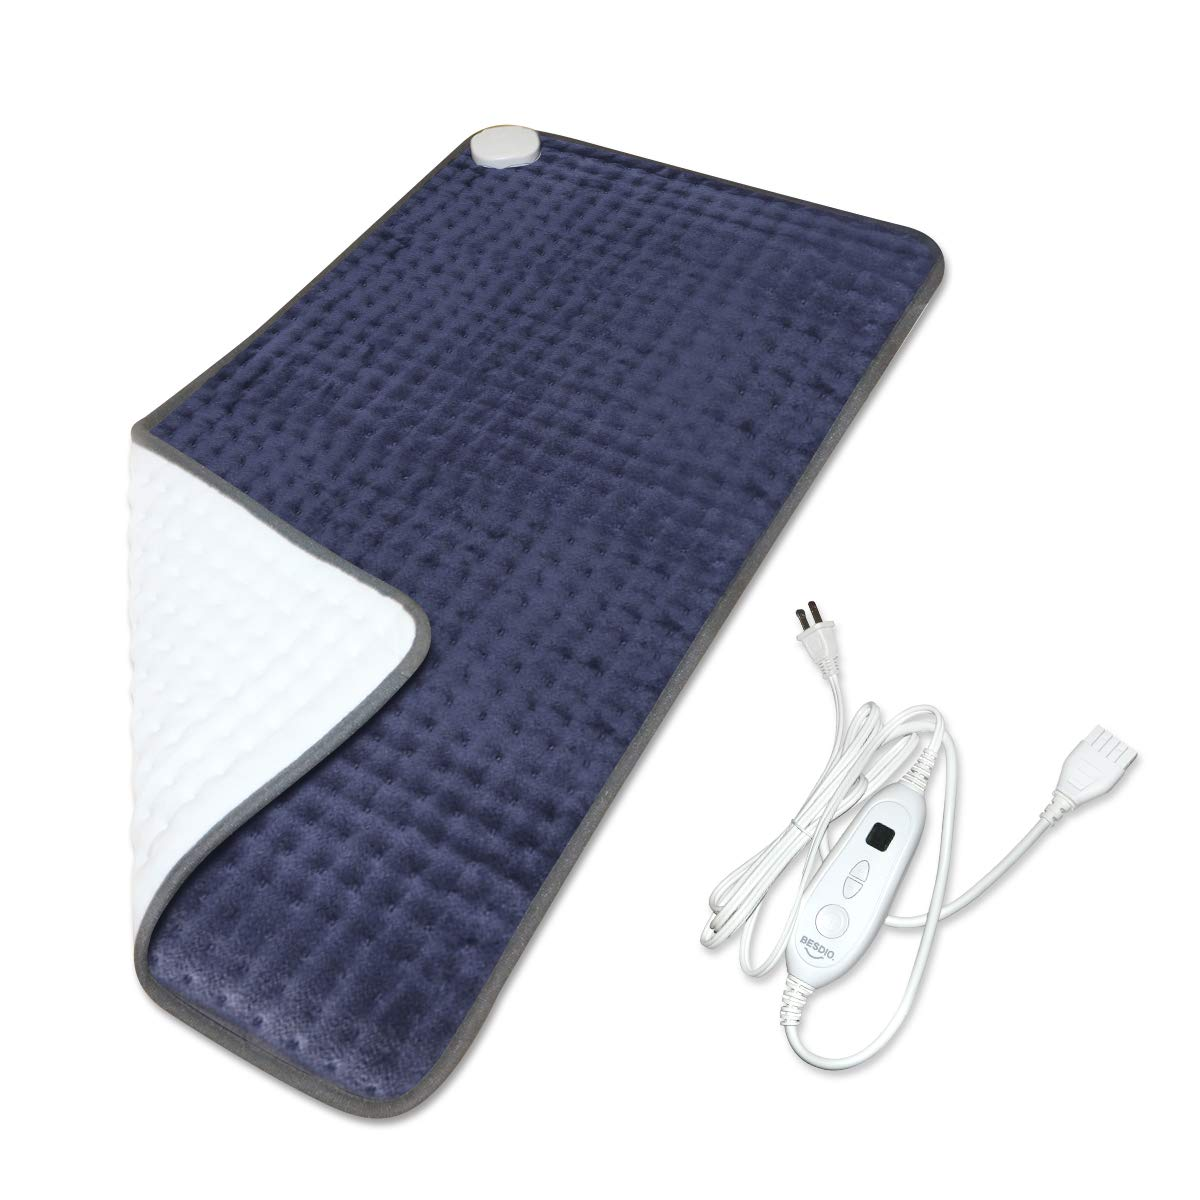 BesDio XXX-Large Heating Pad for Fast Pain Relief, UL Certificate FDA Approved, 6 Heat Settings with Auto Off, Moist Heat Therapy Option, Machine Washable, 33'' x 17'' by BesDio